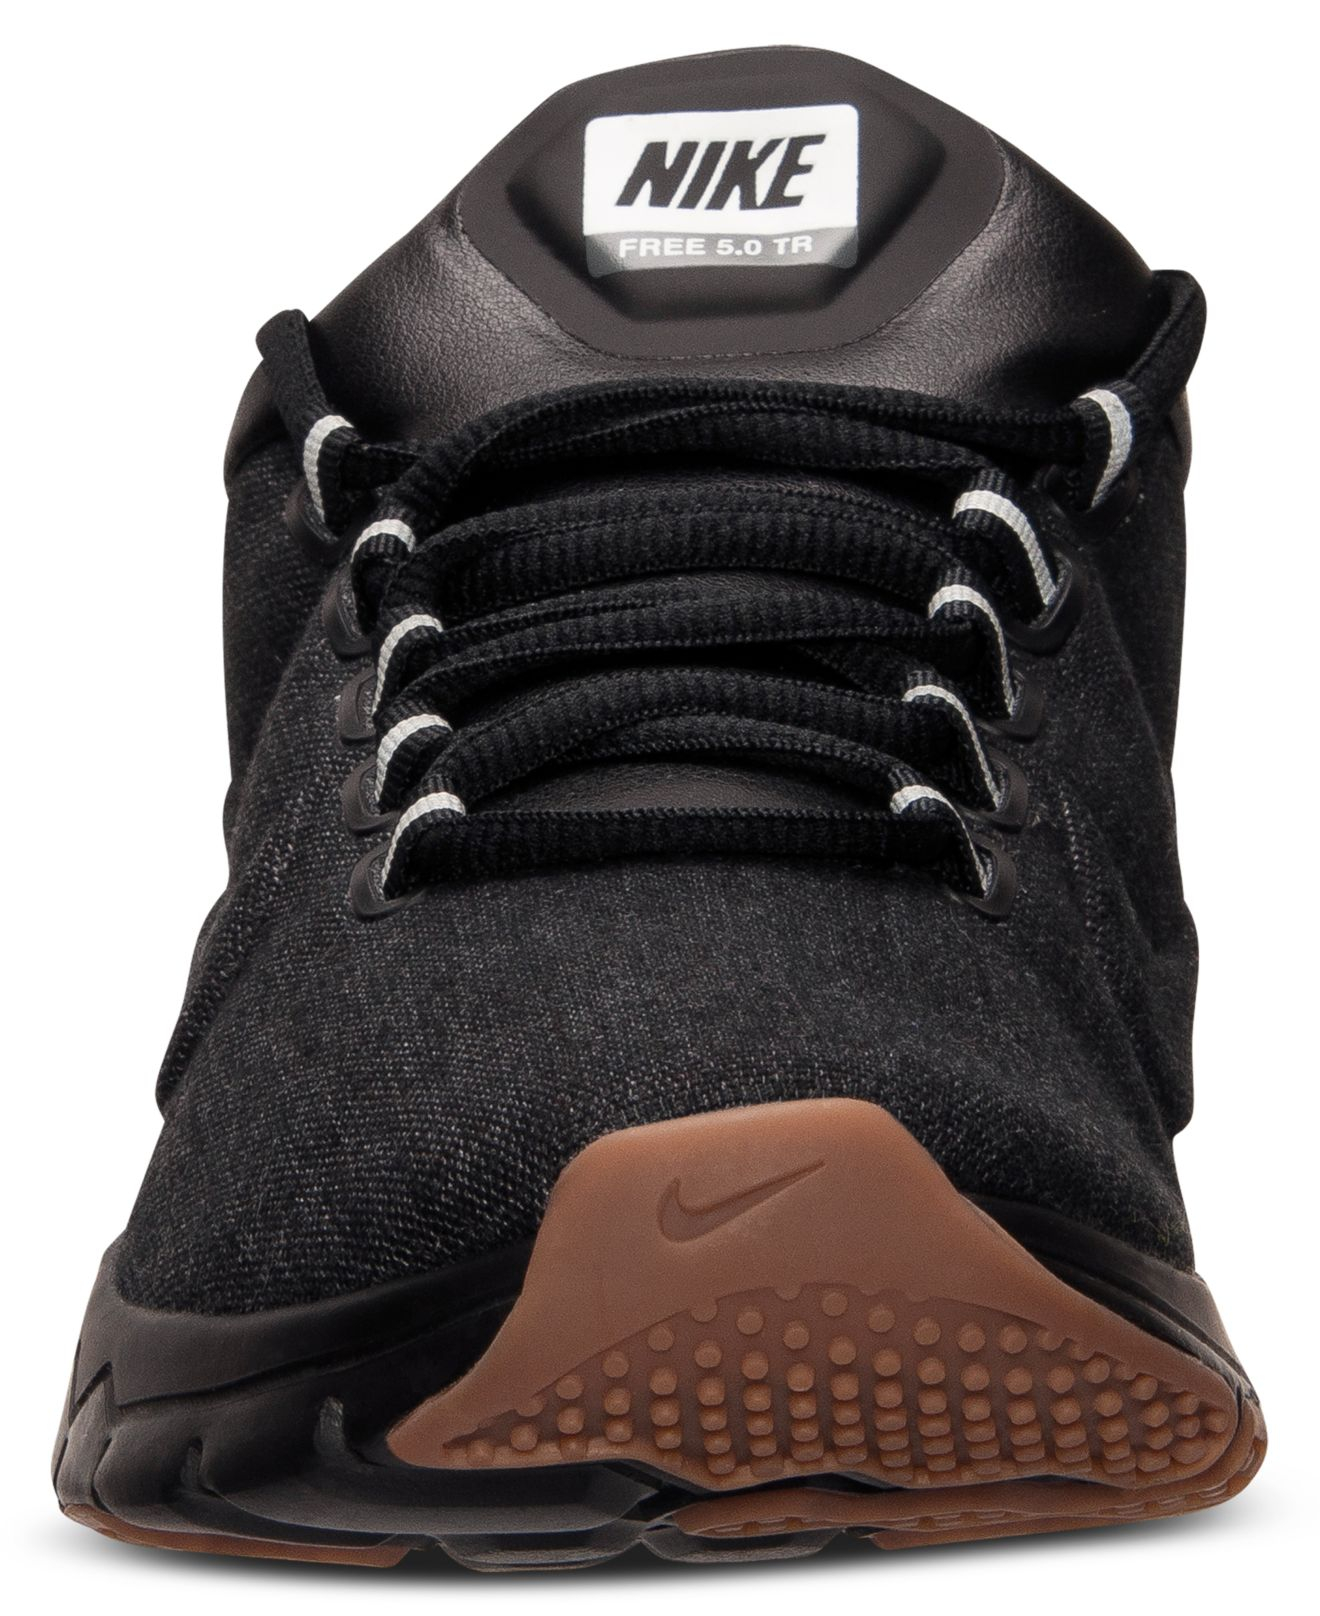 low priced defc3 d28e0 Lyst - Nike Men S Free Trainer 5.0 Premium Running Sneakers From Finish  Line in Black for Men